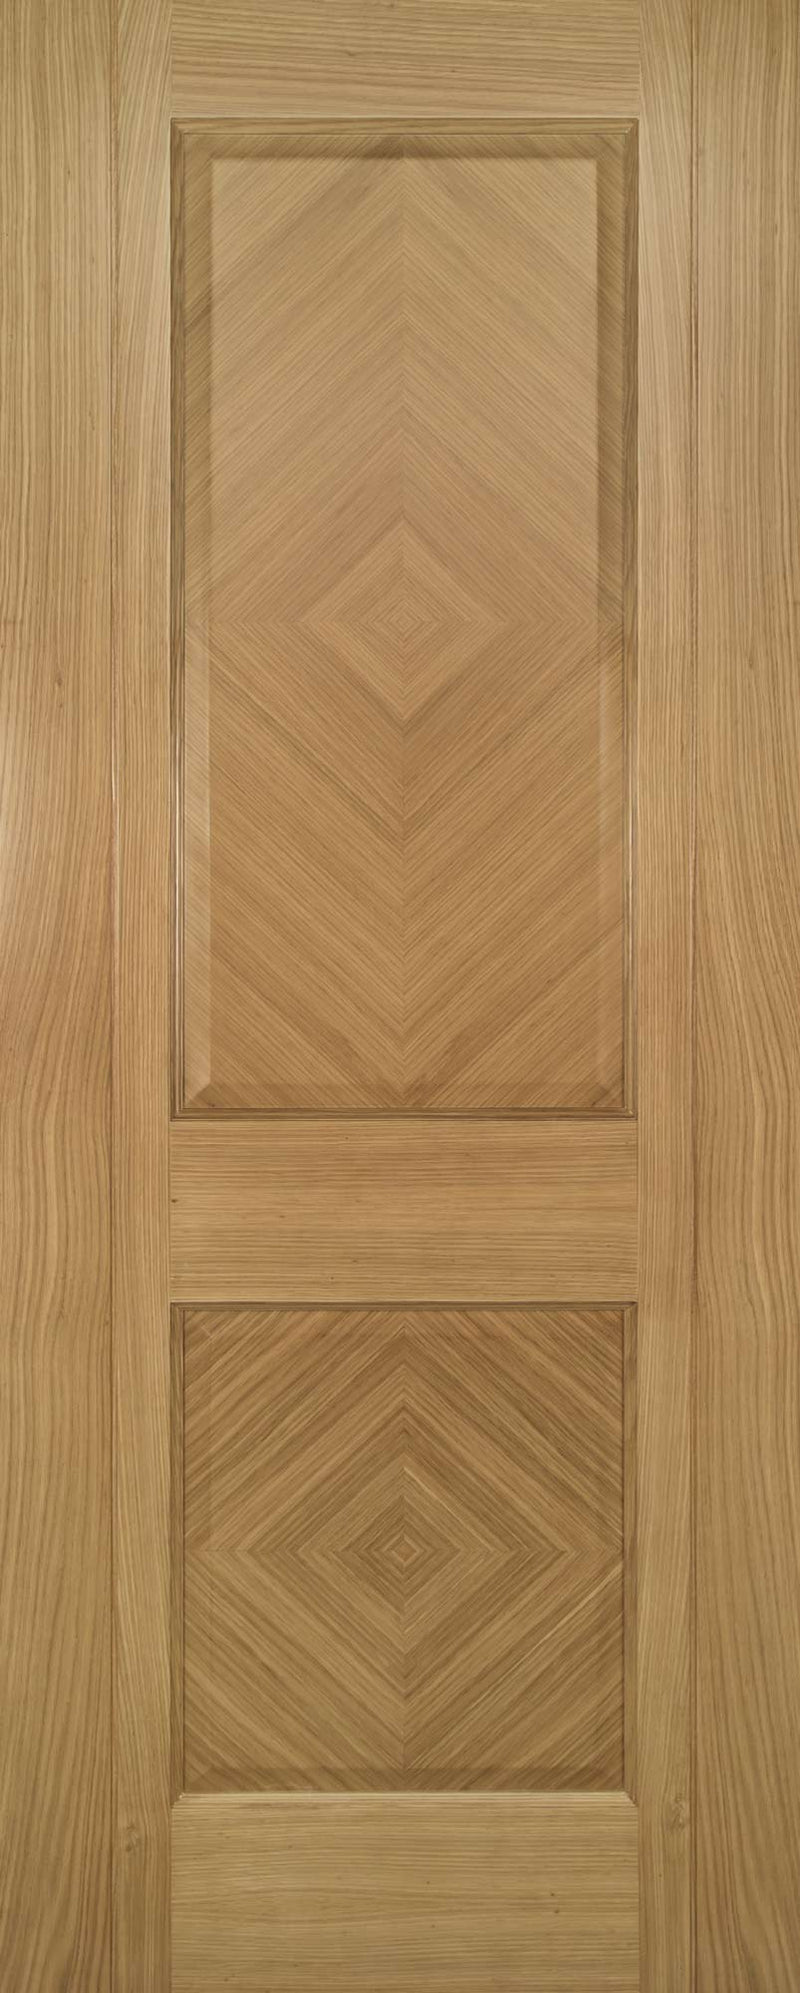 Deanta Oak Kensington Fire Door Pre-Finished